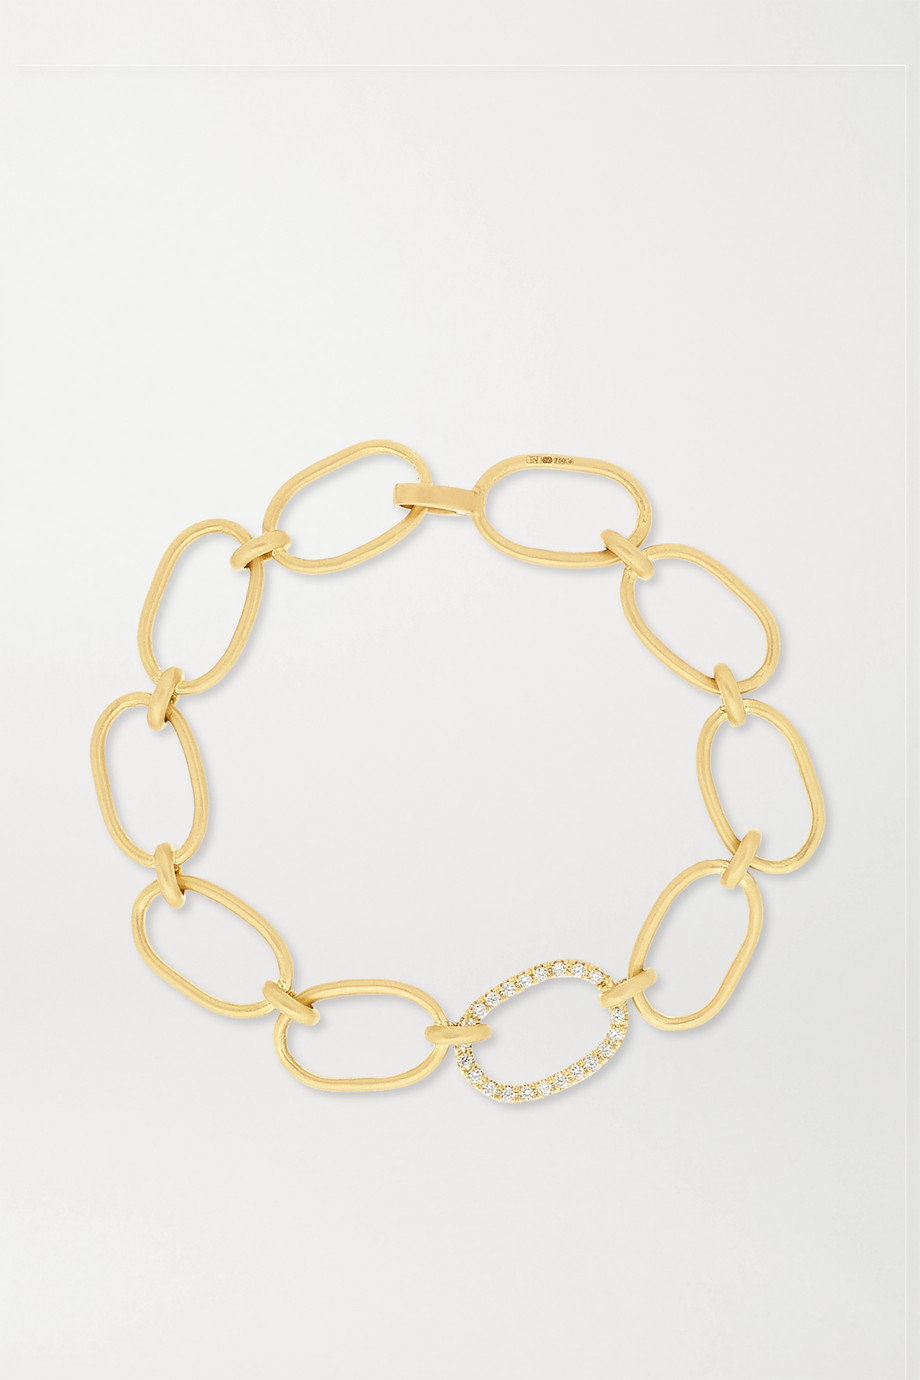 Irene Neuwirth 18-karat gold diamond bracelet